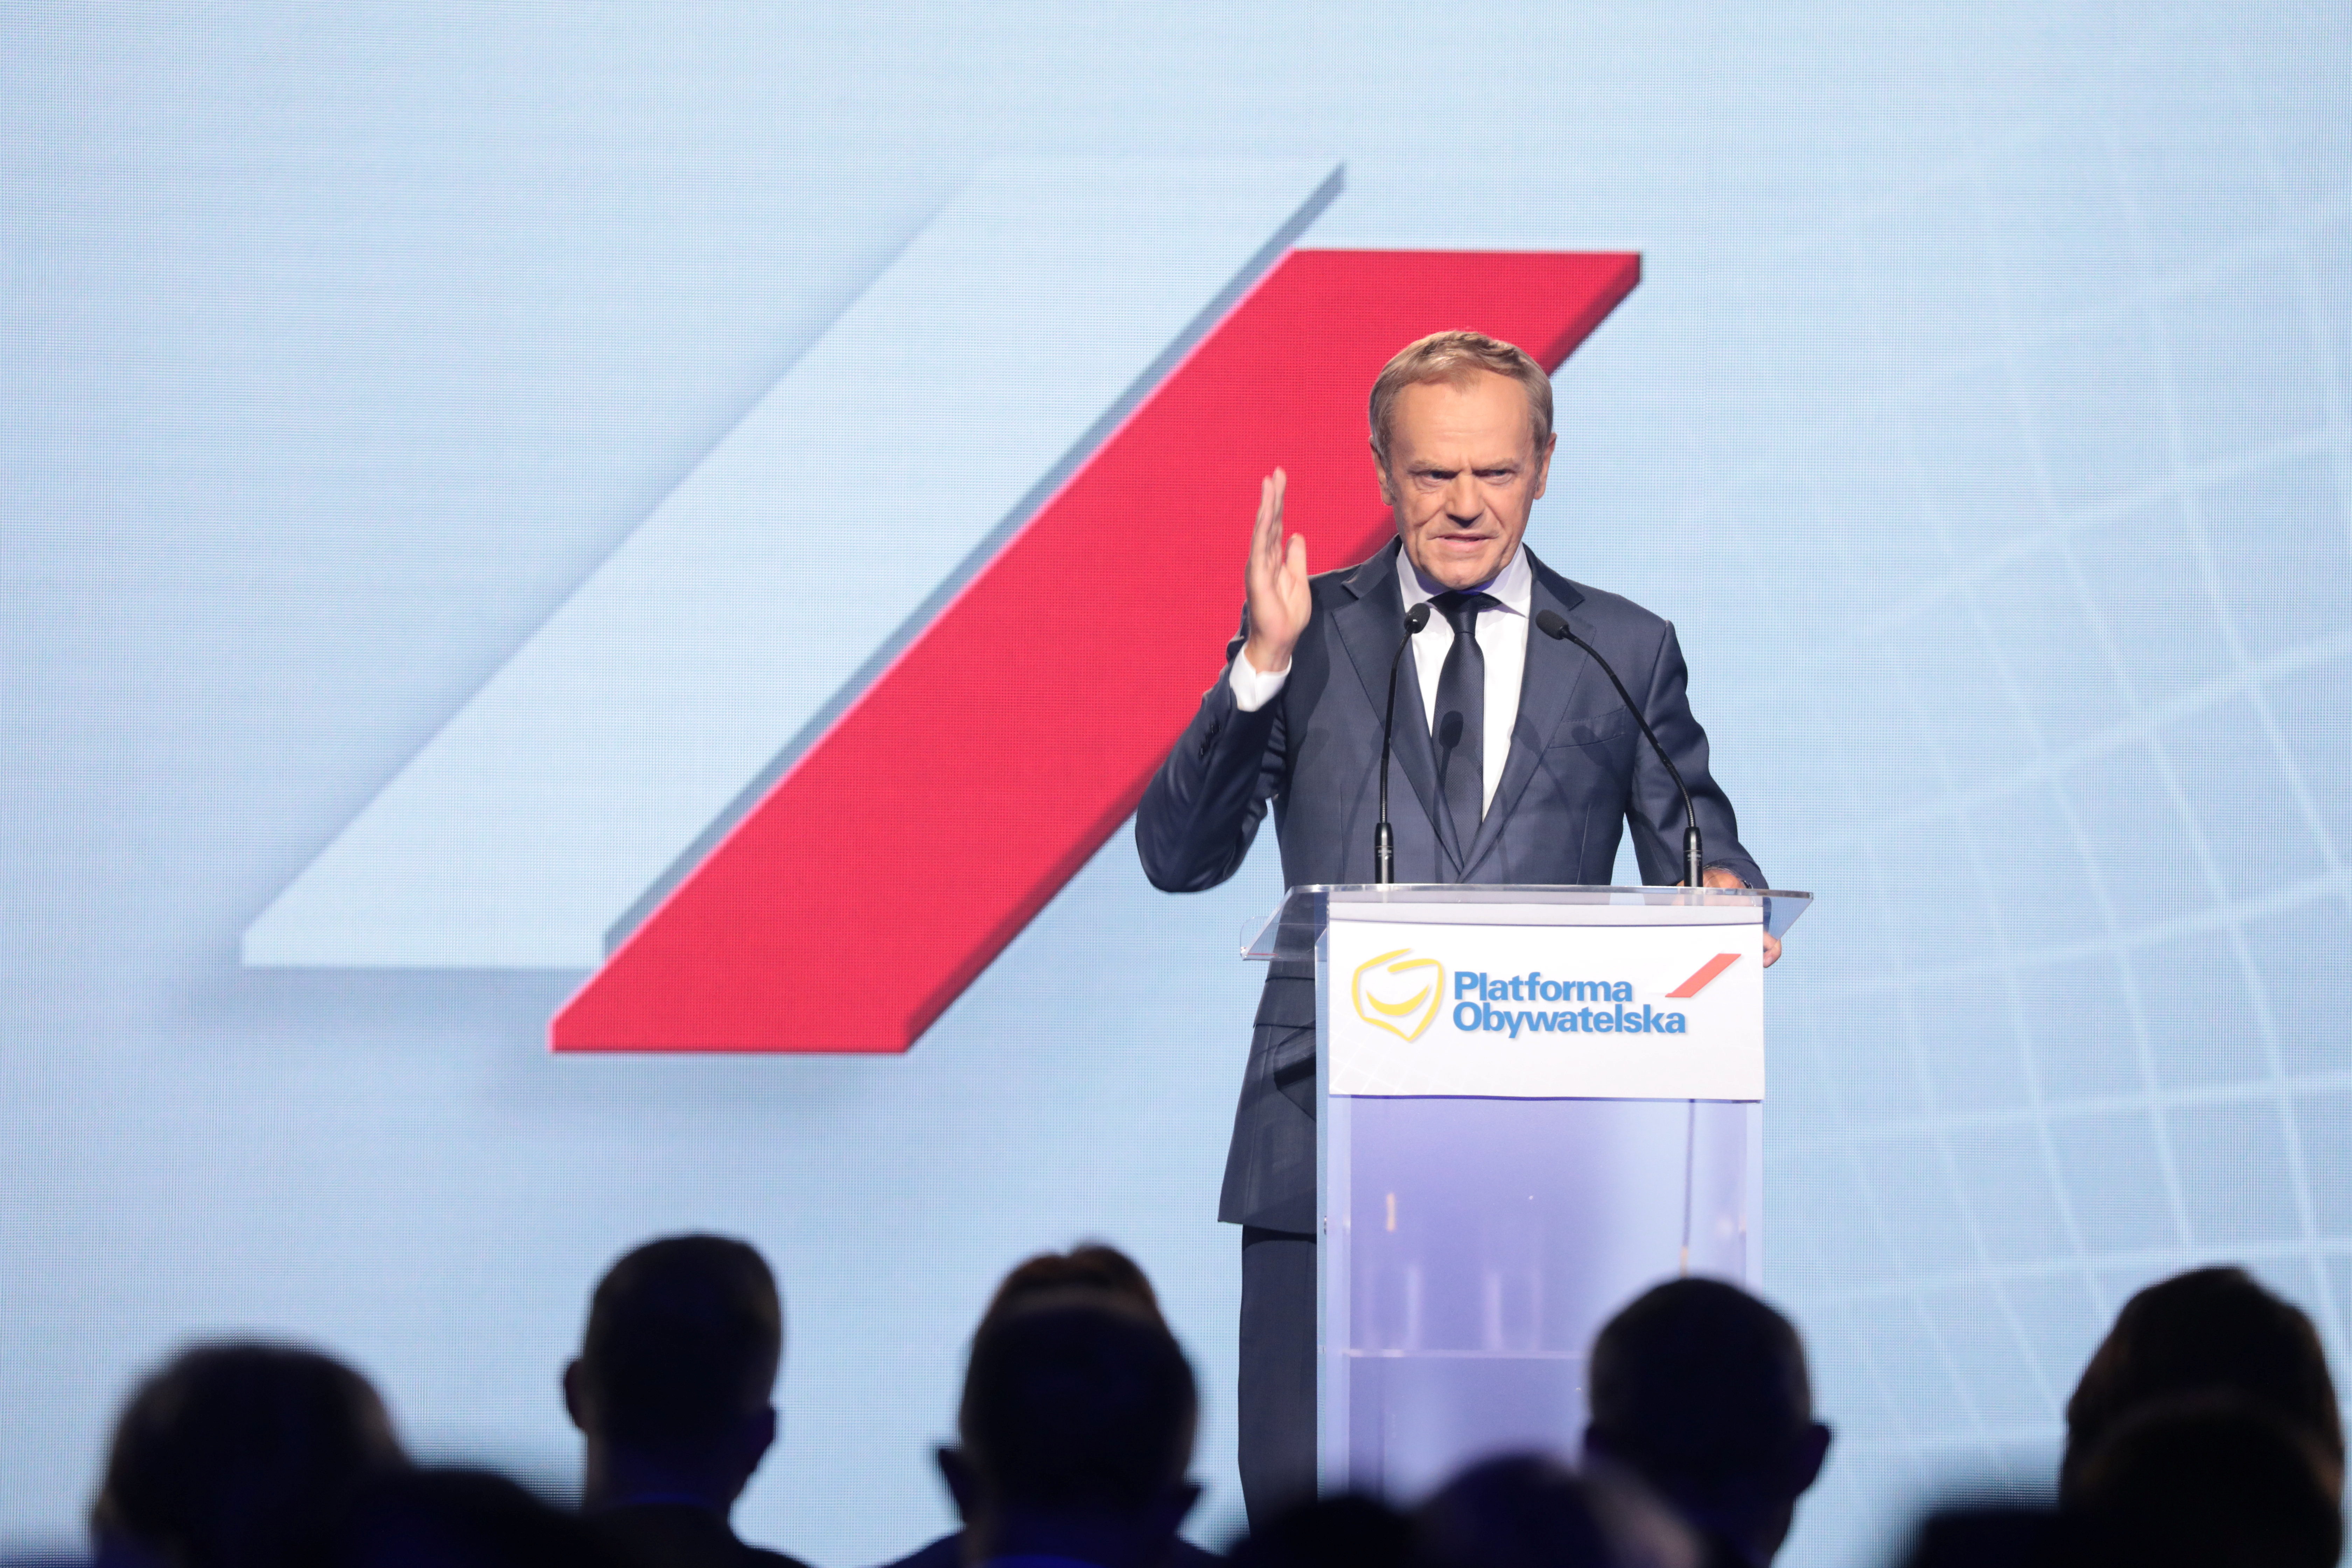 Former European Council President Donald Tusk speaks during a party convention of the main opposition Civic Platform in Warsaw, Poland July 3, 2021. Slawomir Kaminski/Agencja Gazeta via REUTERS